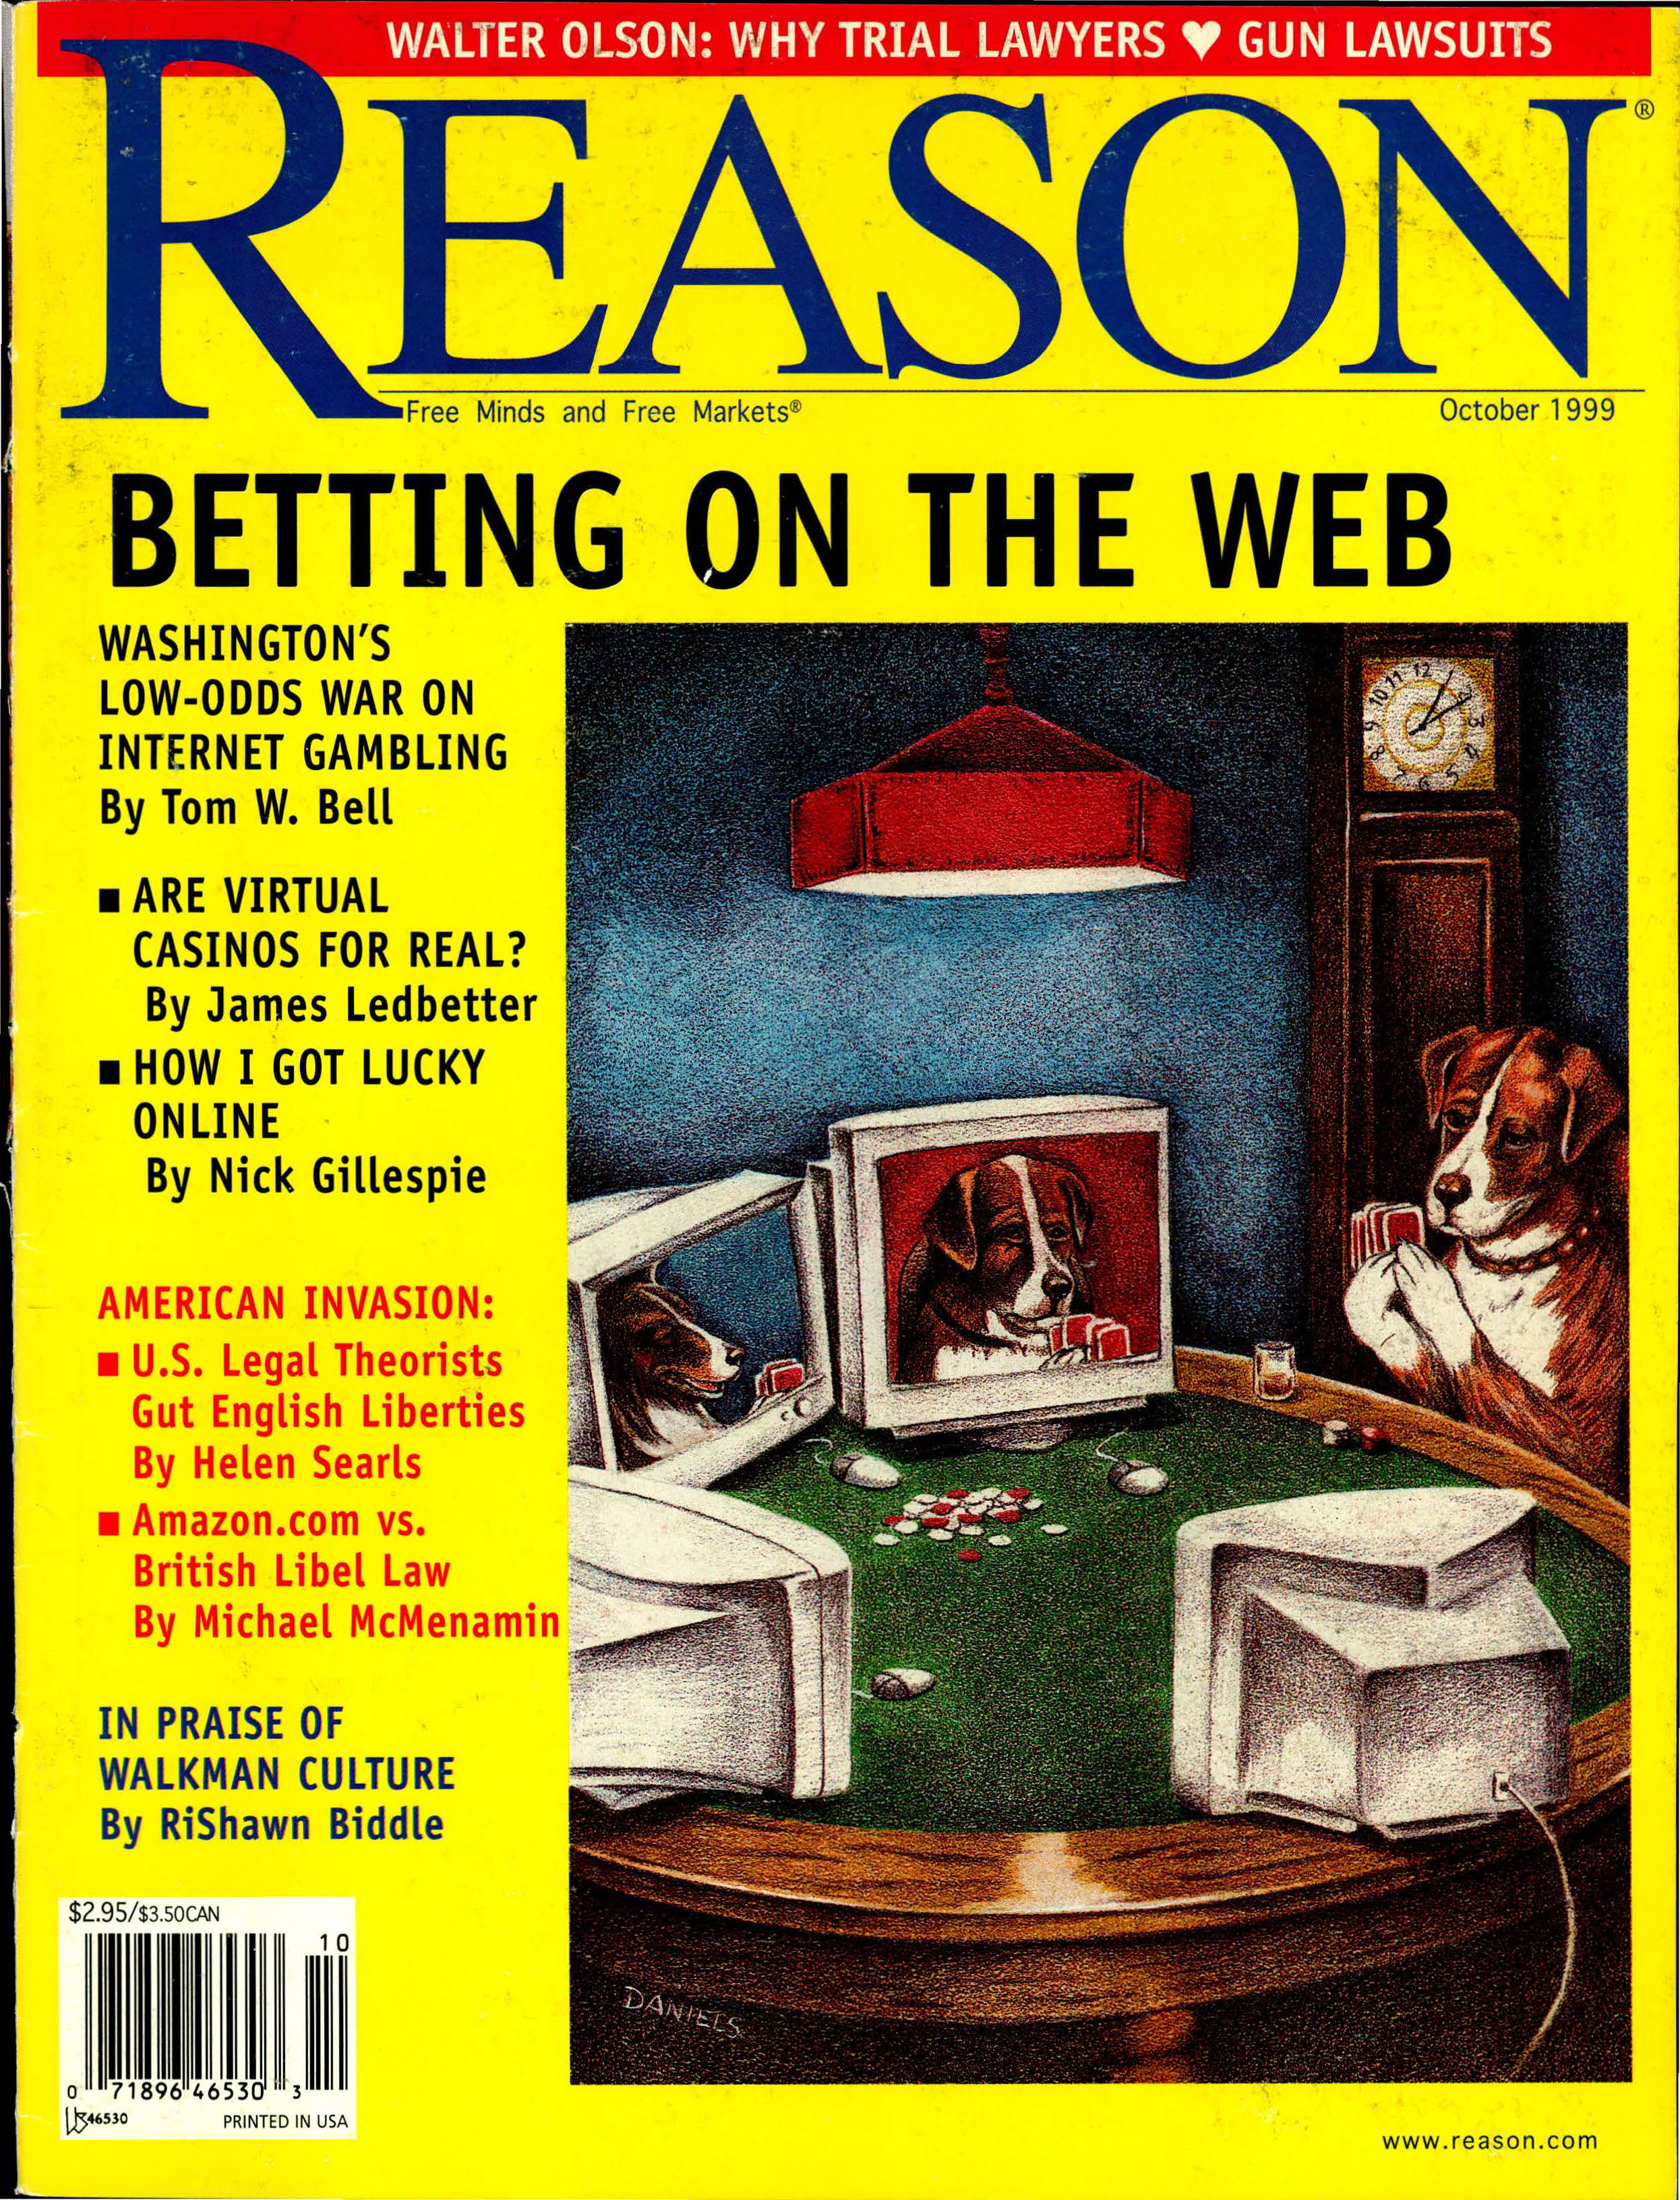 Reason Magazine, October 1999 cover image